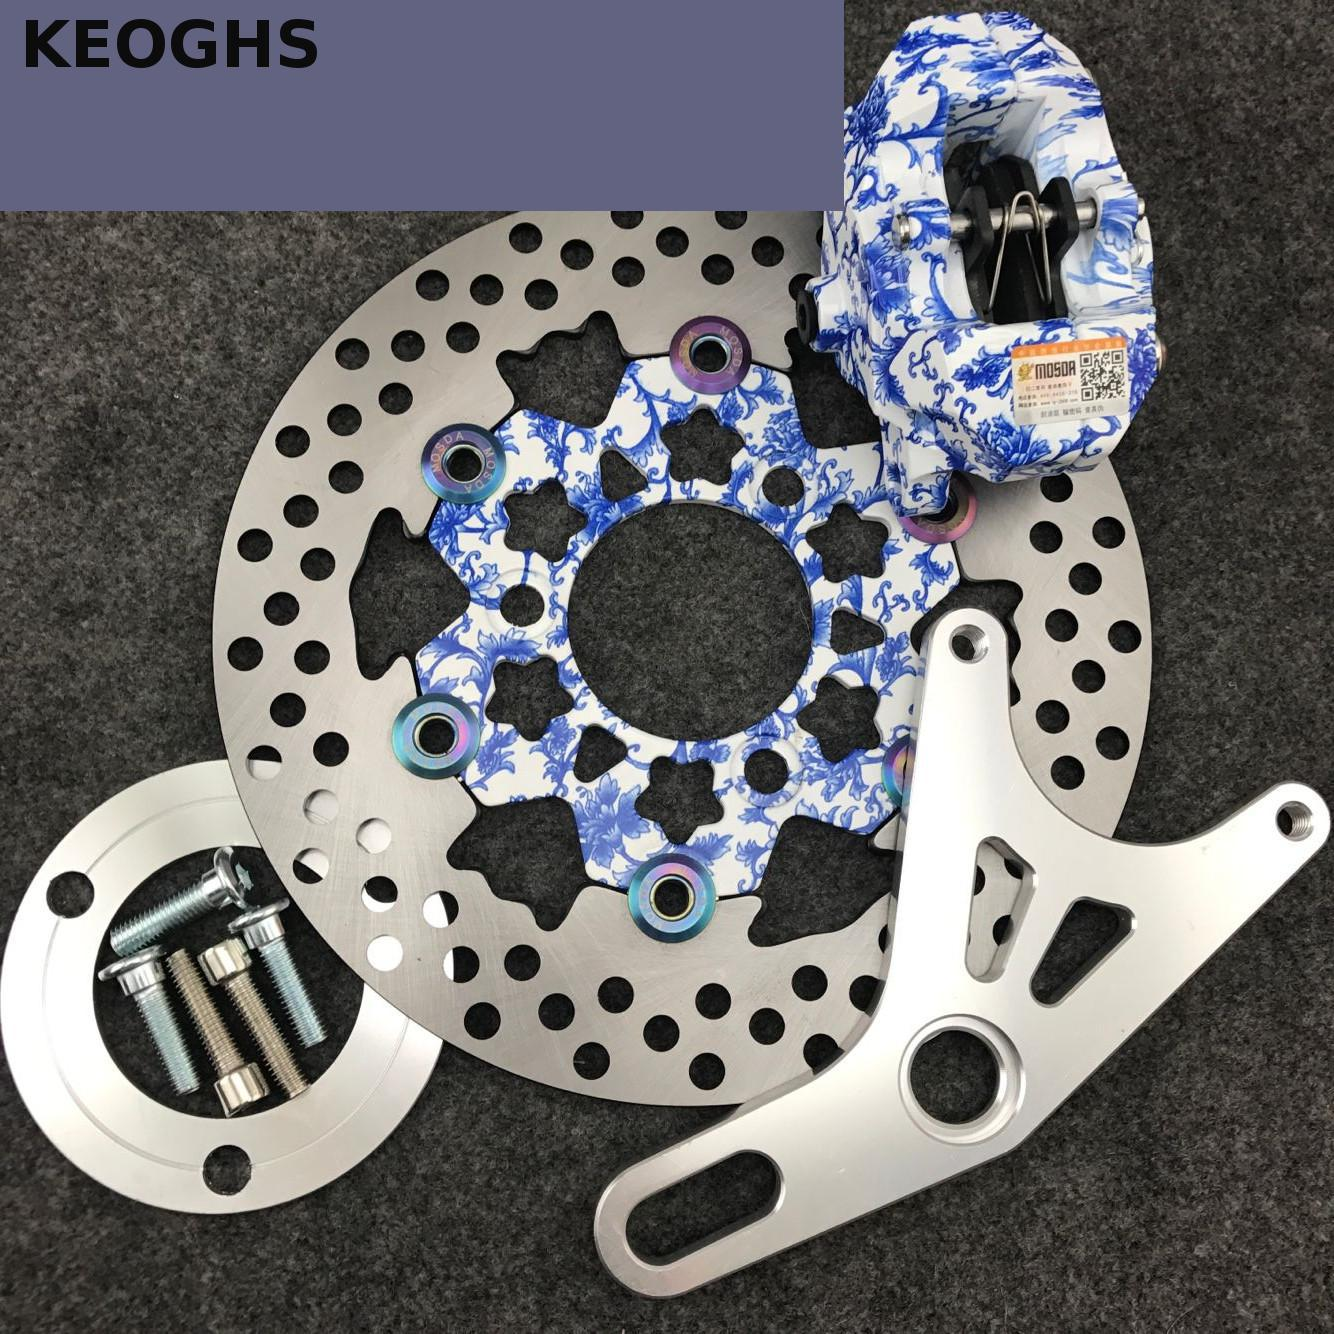 Keoghs Motorcycle Rear Brake System White And Blue Chinese Style 220mm Brake Disc/2 Piston Caliper For Yamaha Scooter keoghs akcnd 220mm floating motorcycle brake disc brake rotor for yamaha scooter rear and front modify